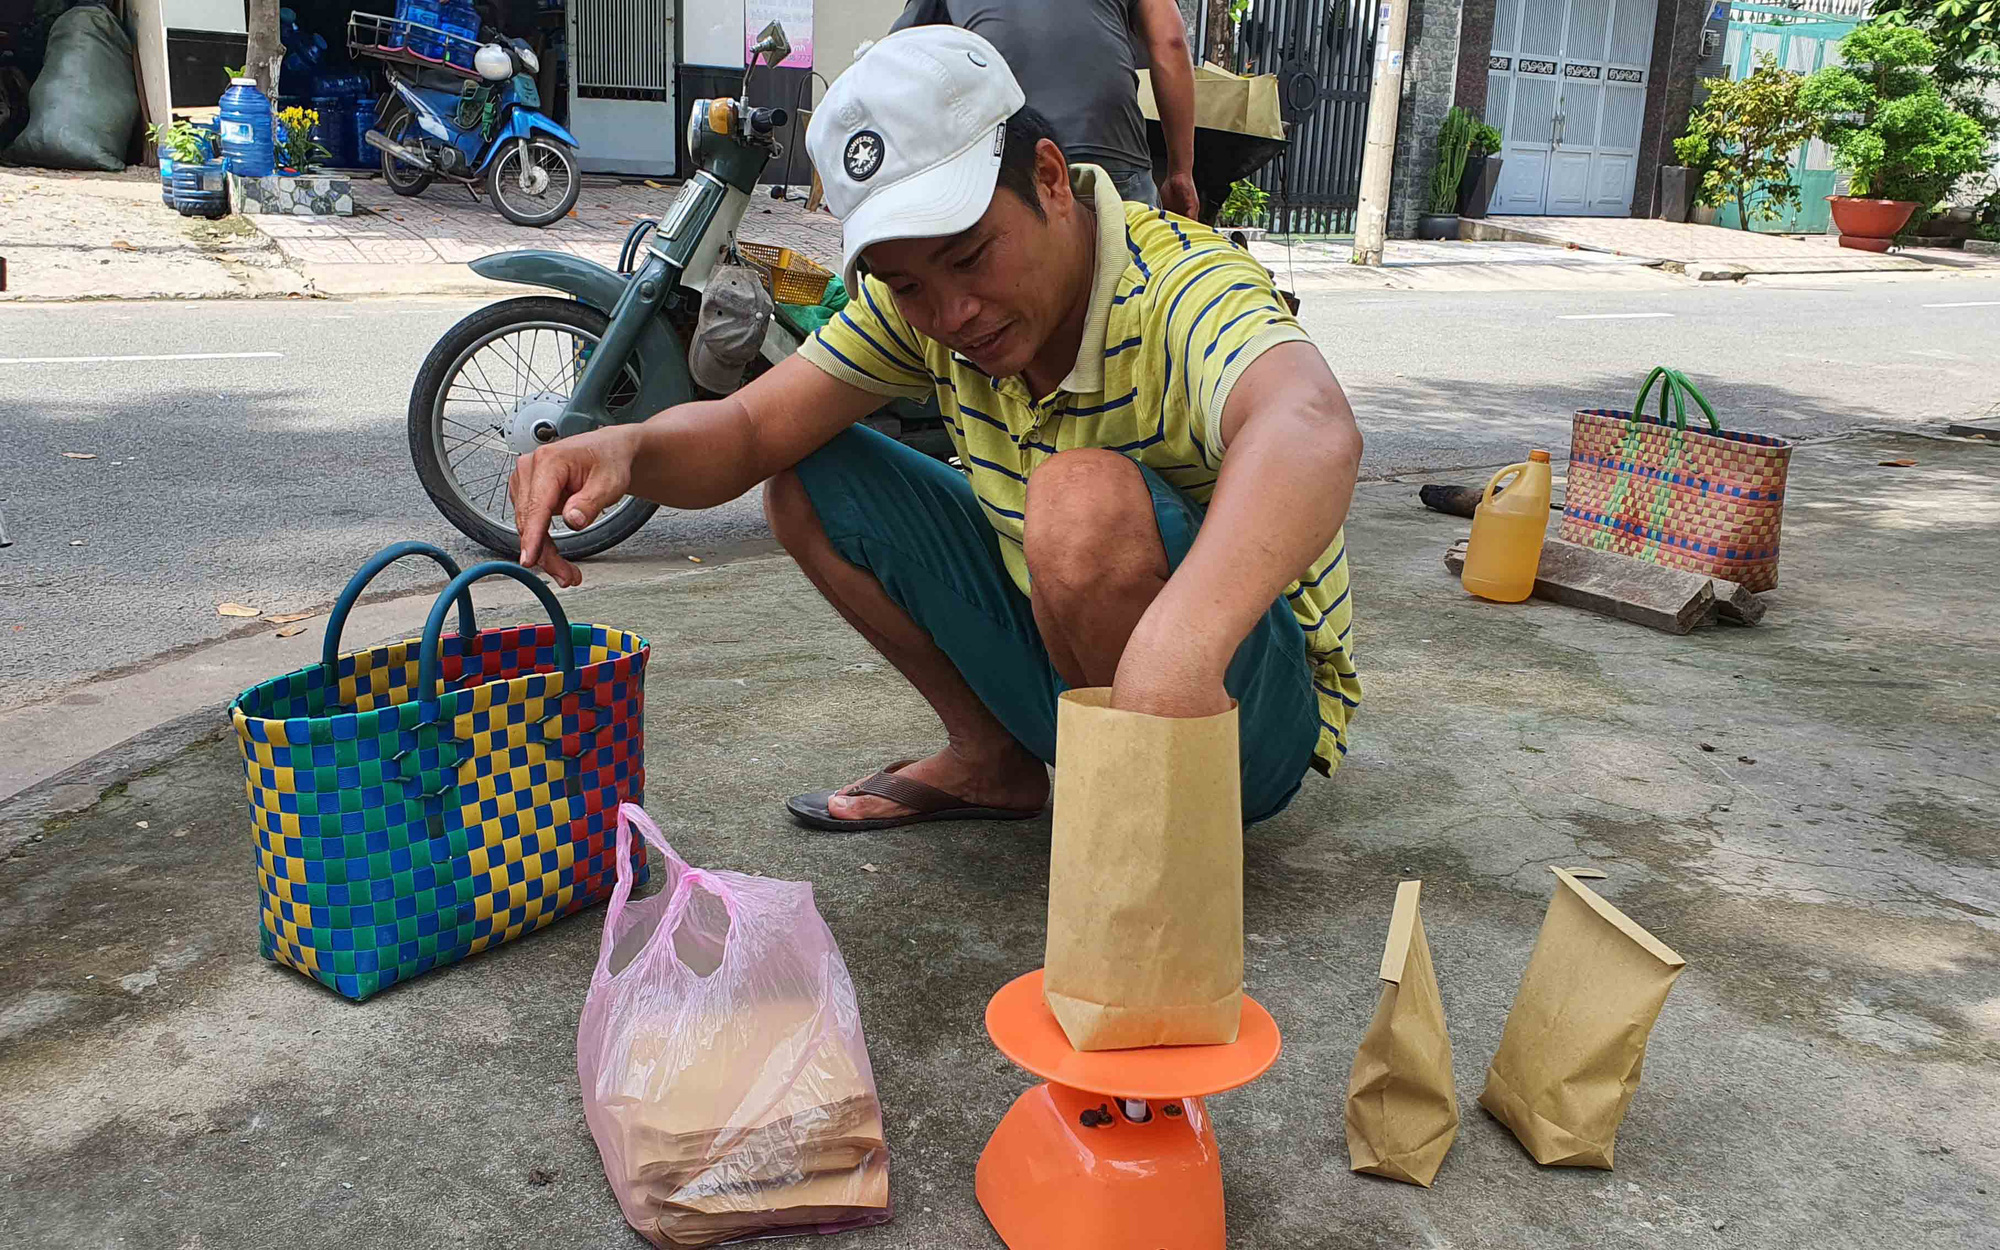 Ngo Dinh Phong, Loi's nephew, portions roasted hazelnuts into paper bags at their roadside stall in Ho Chi Minh City, Vietnam. Photo: Manh Dung / Tuoi Tre